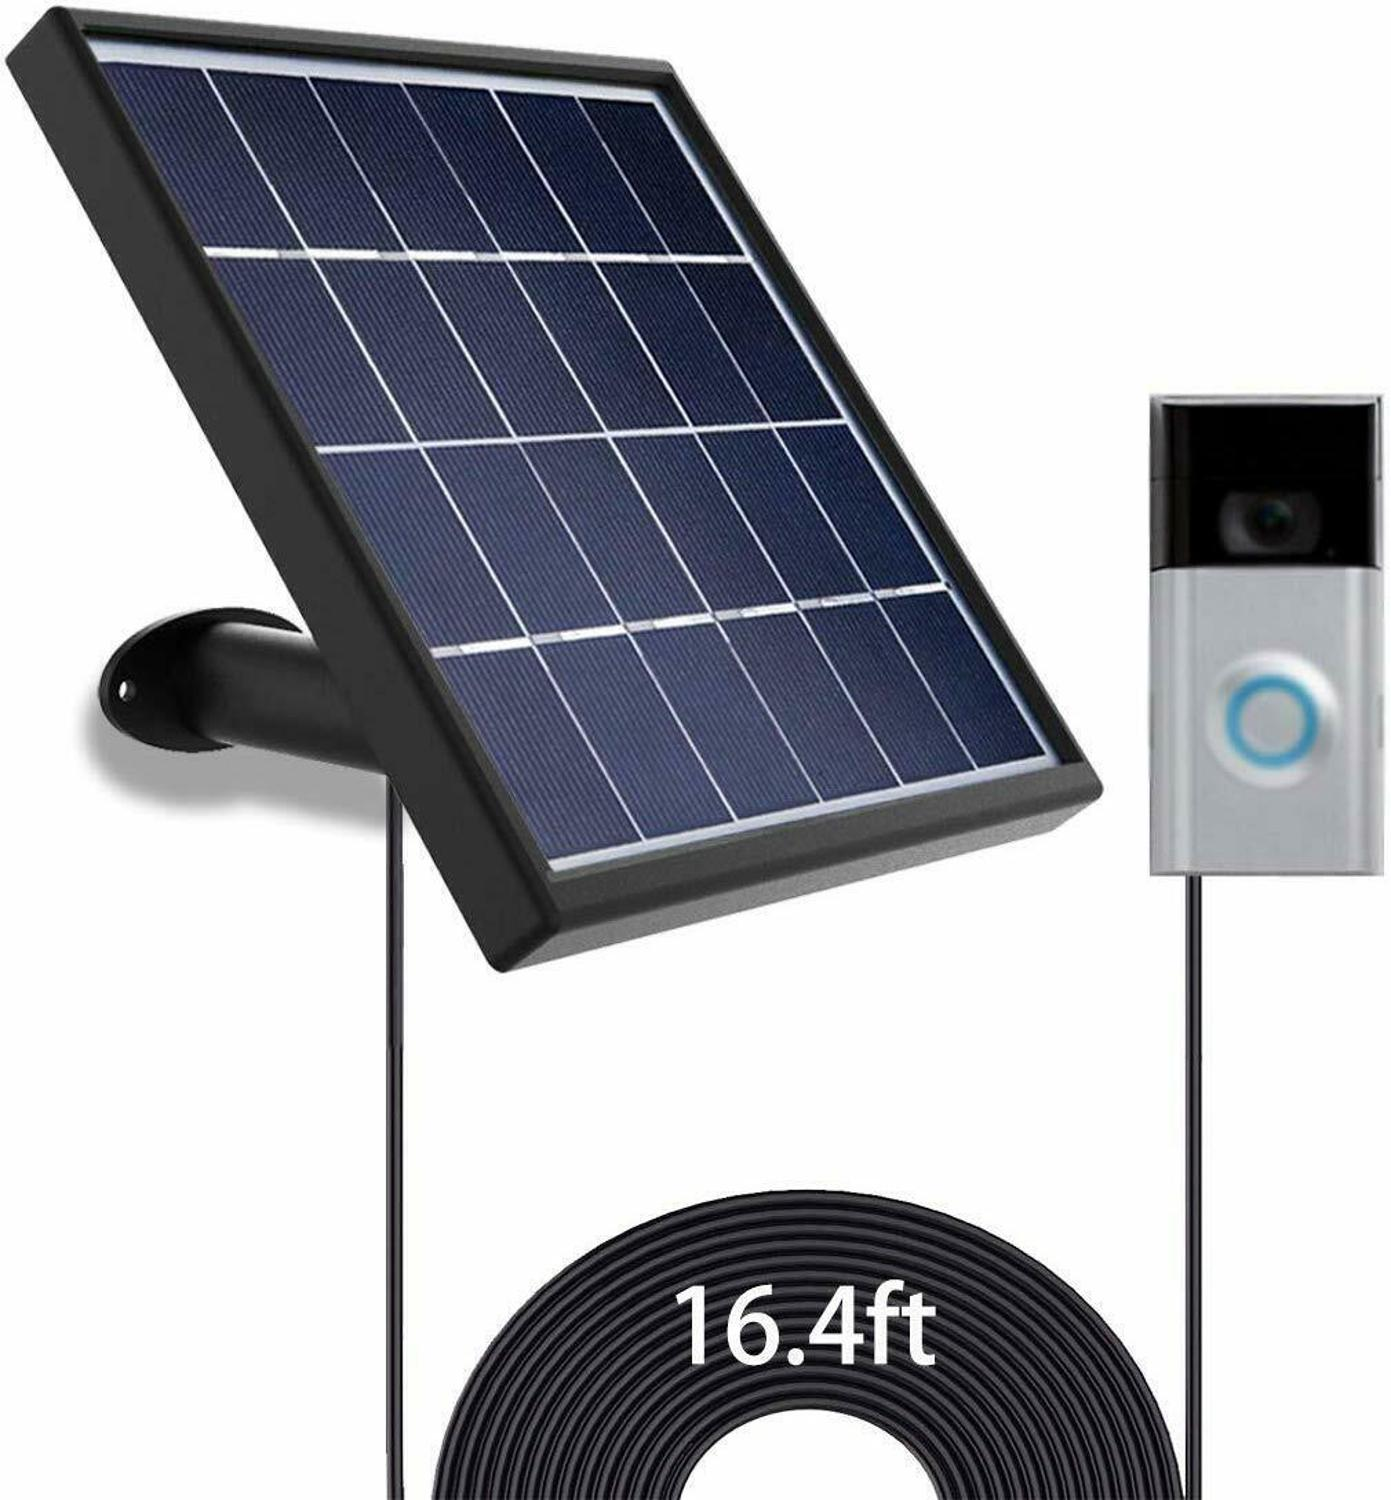 Solar Panel For Ring Video Doorbell 2 Waterproof Charge 5 V 3.2W (Max) Output